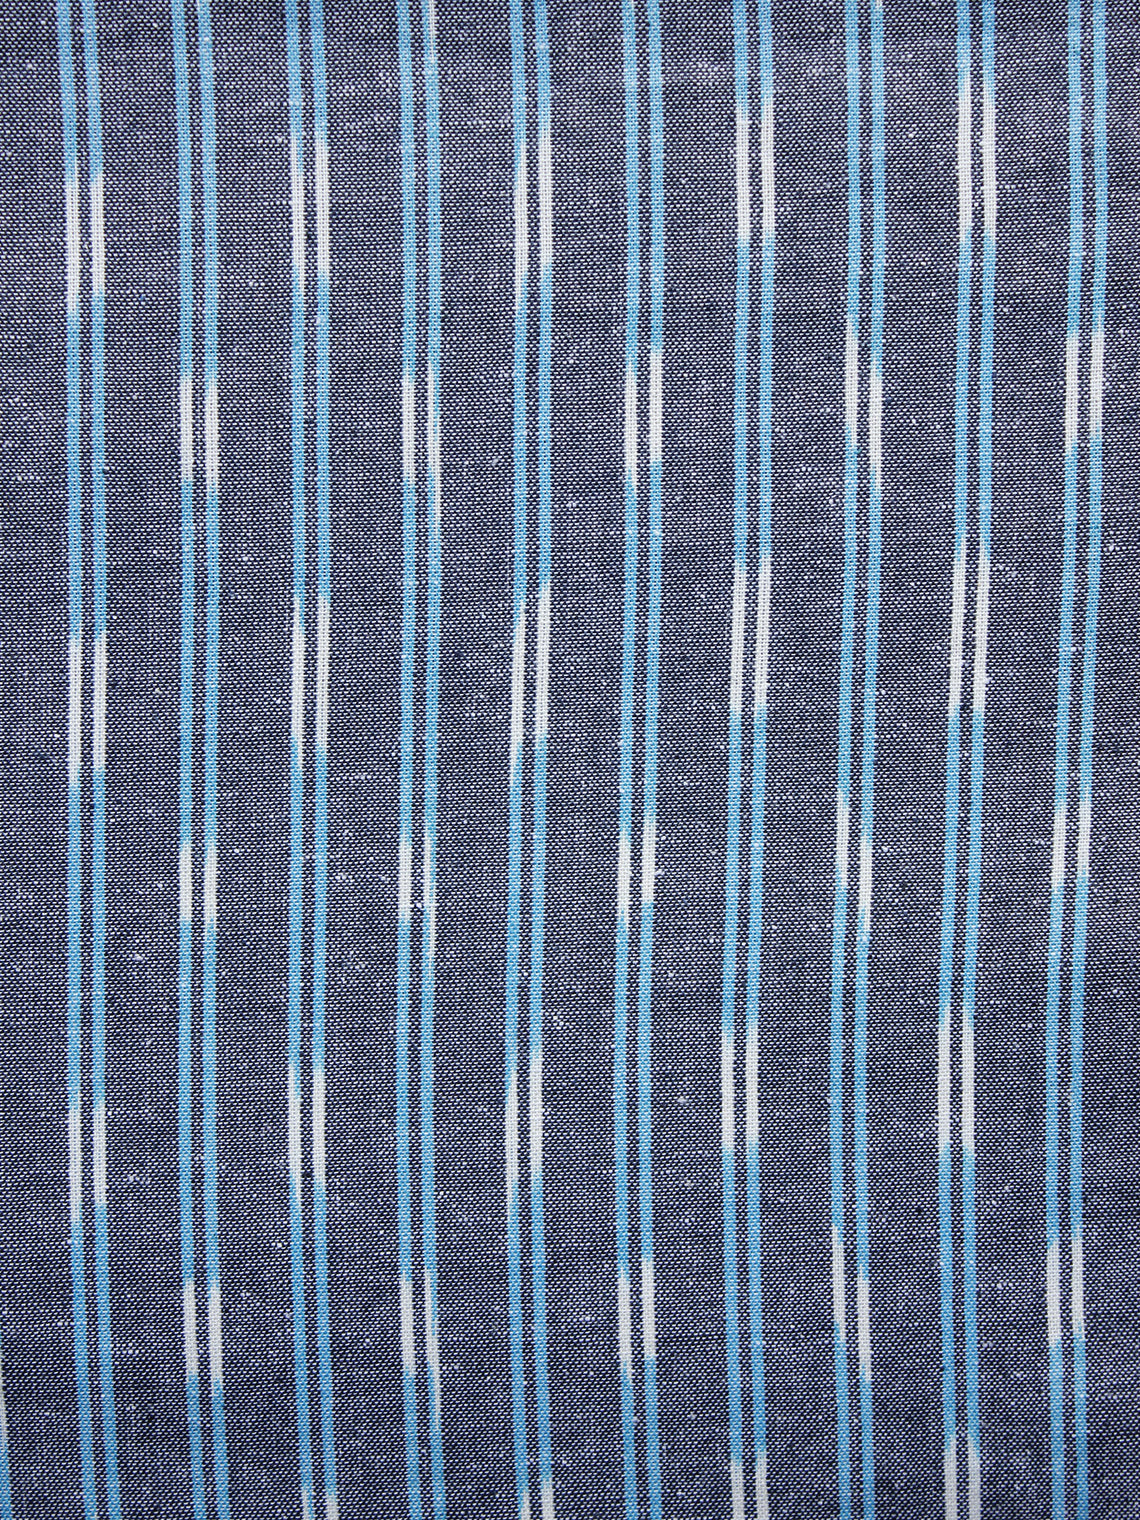 Grey White Light Blue Pochampally Hand Weaved Ikat Fabric Per Meter - F003F1242